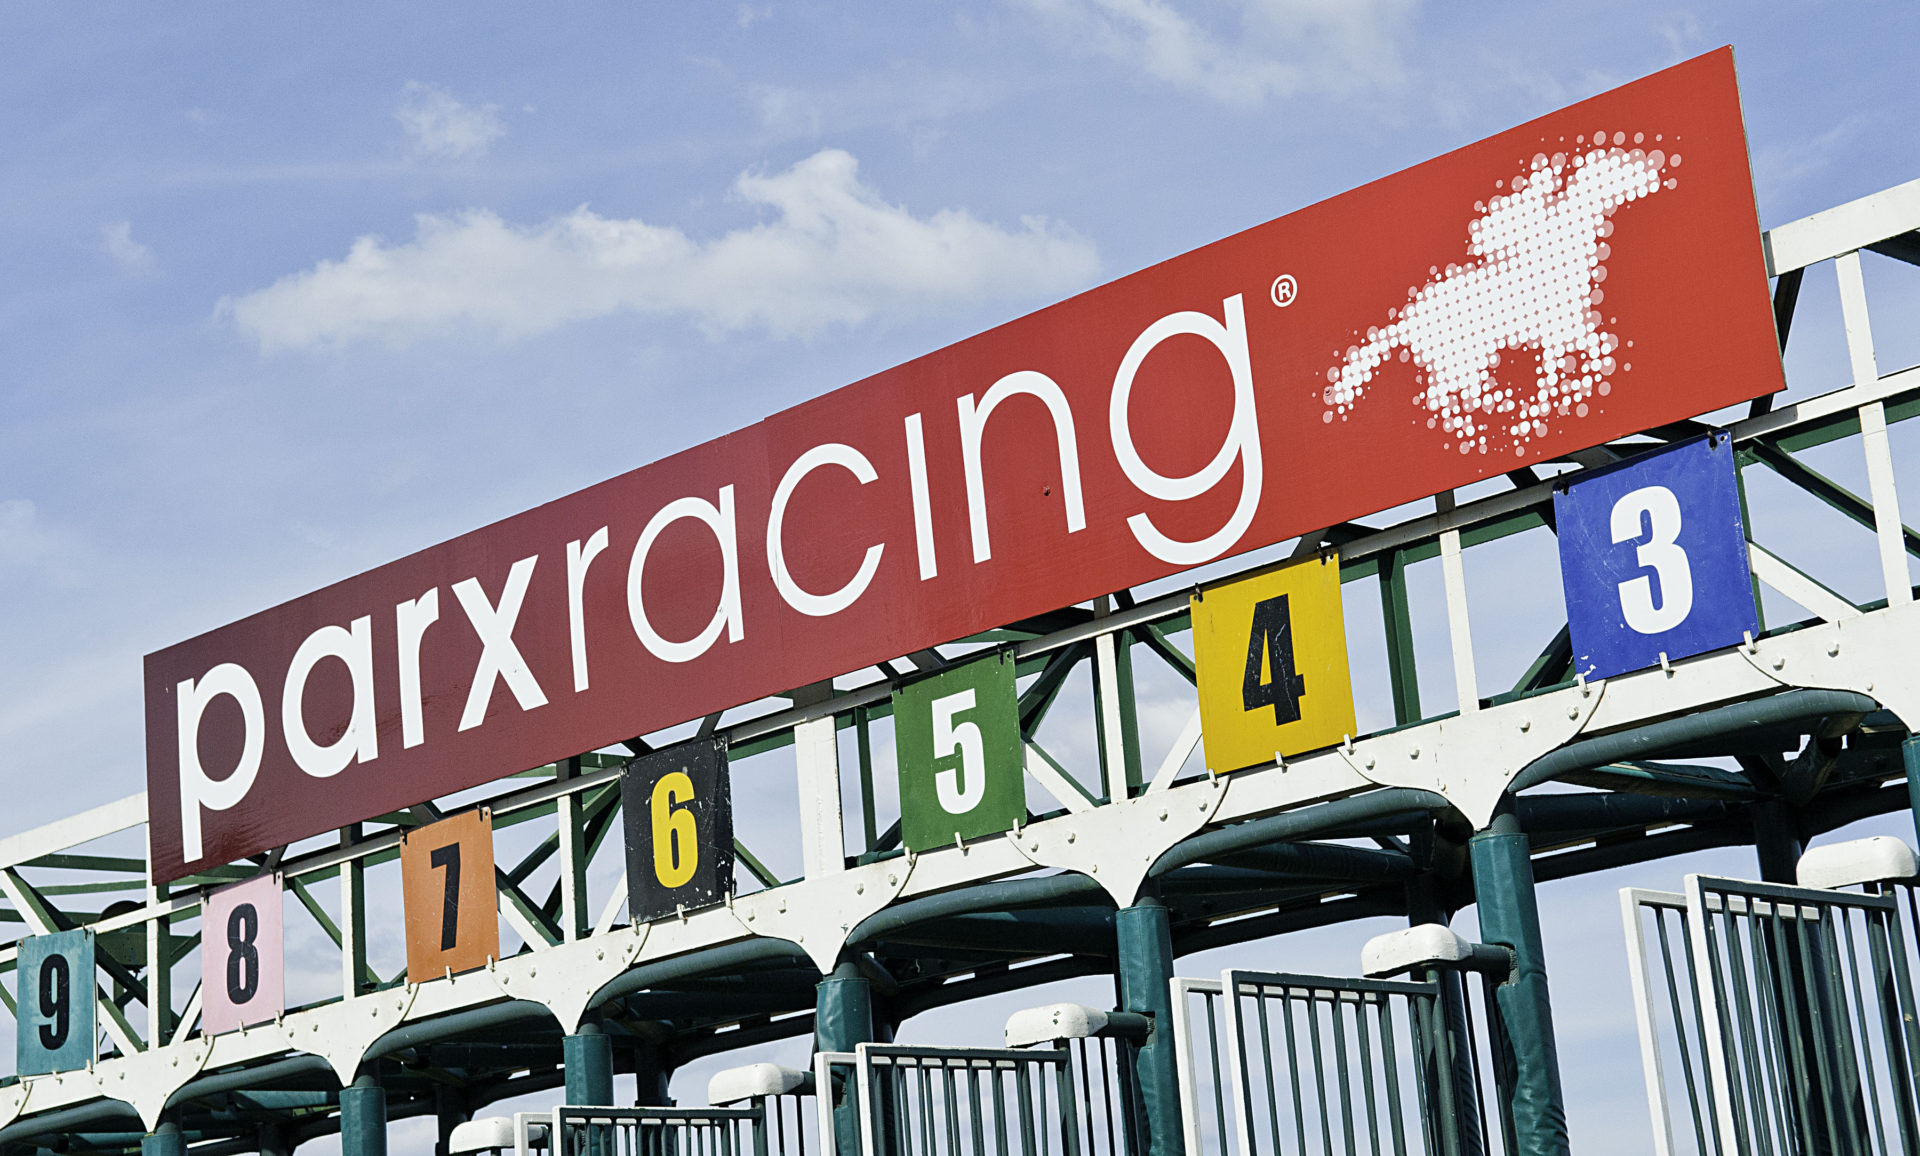 Parx offers multiple horses a chance to qualify for bonus money